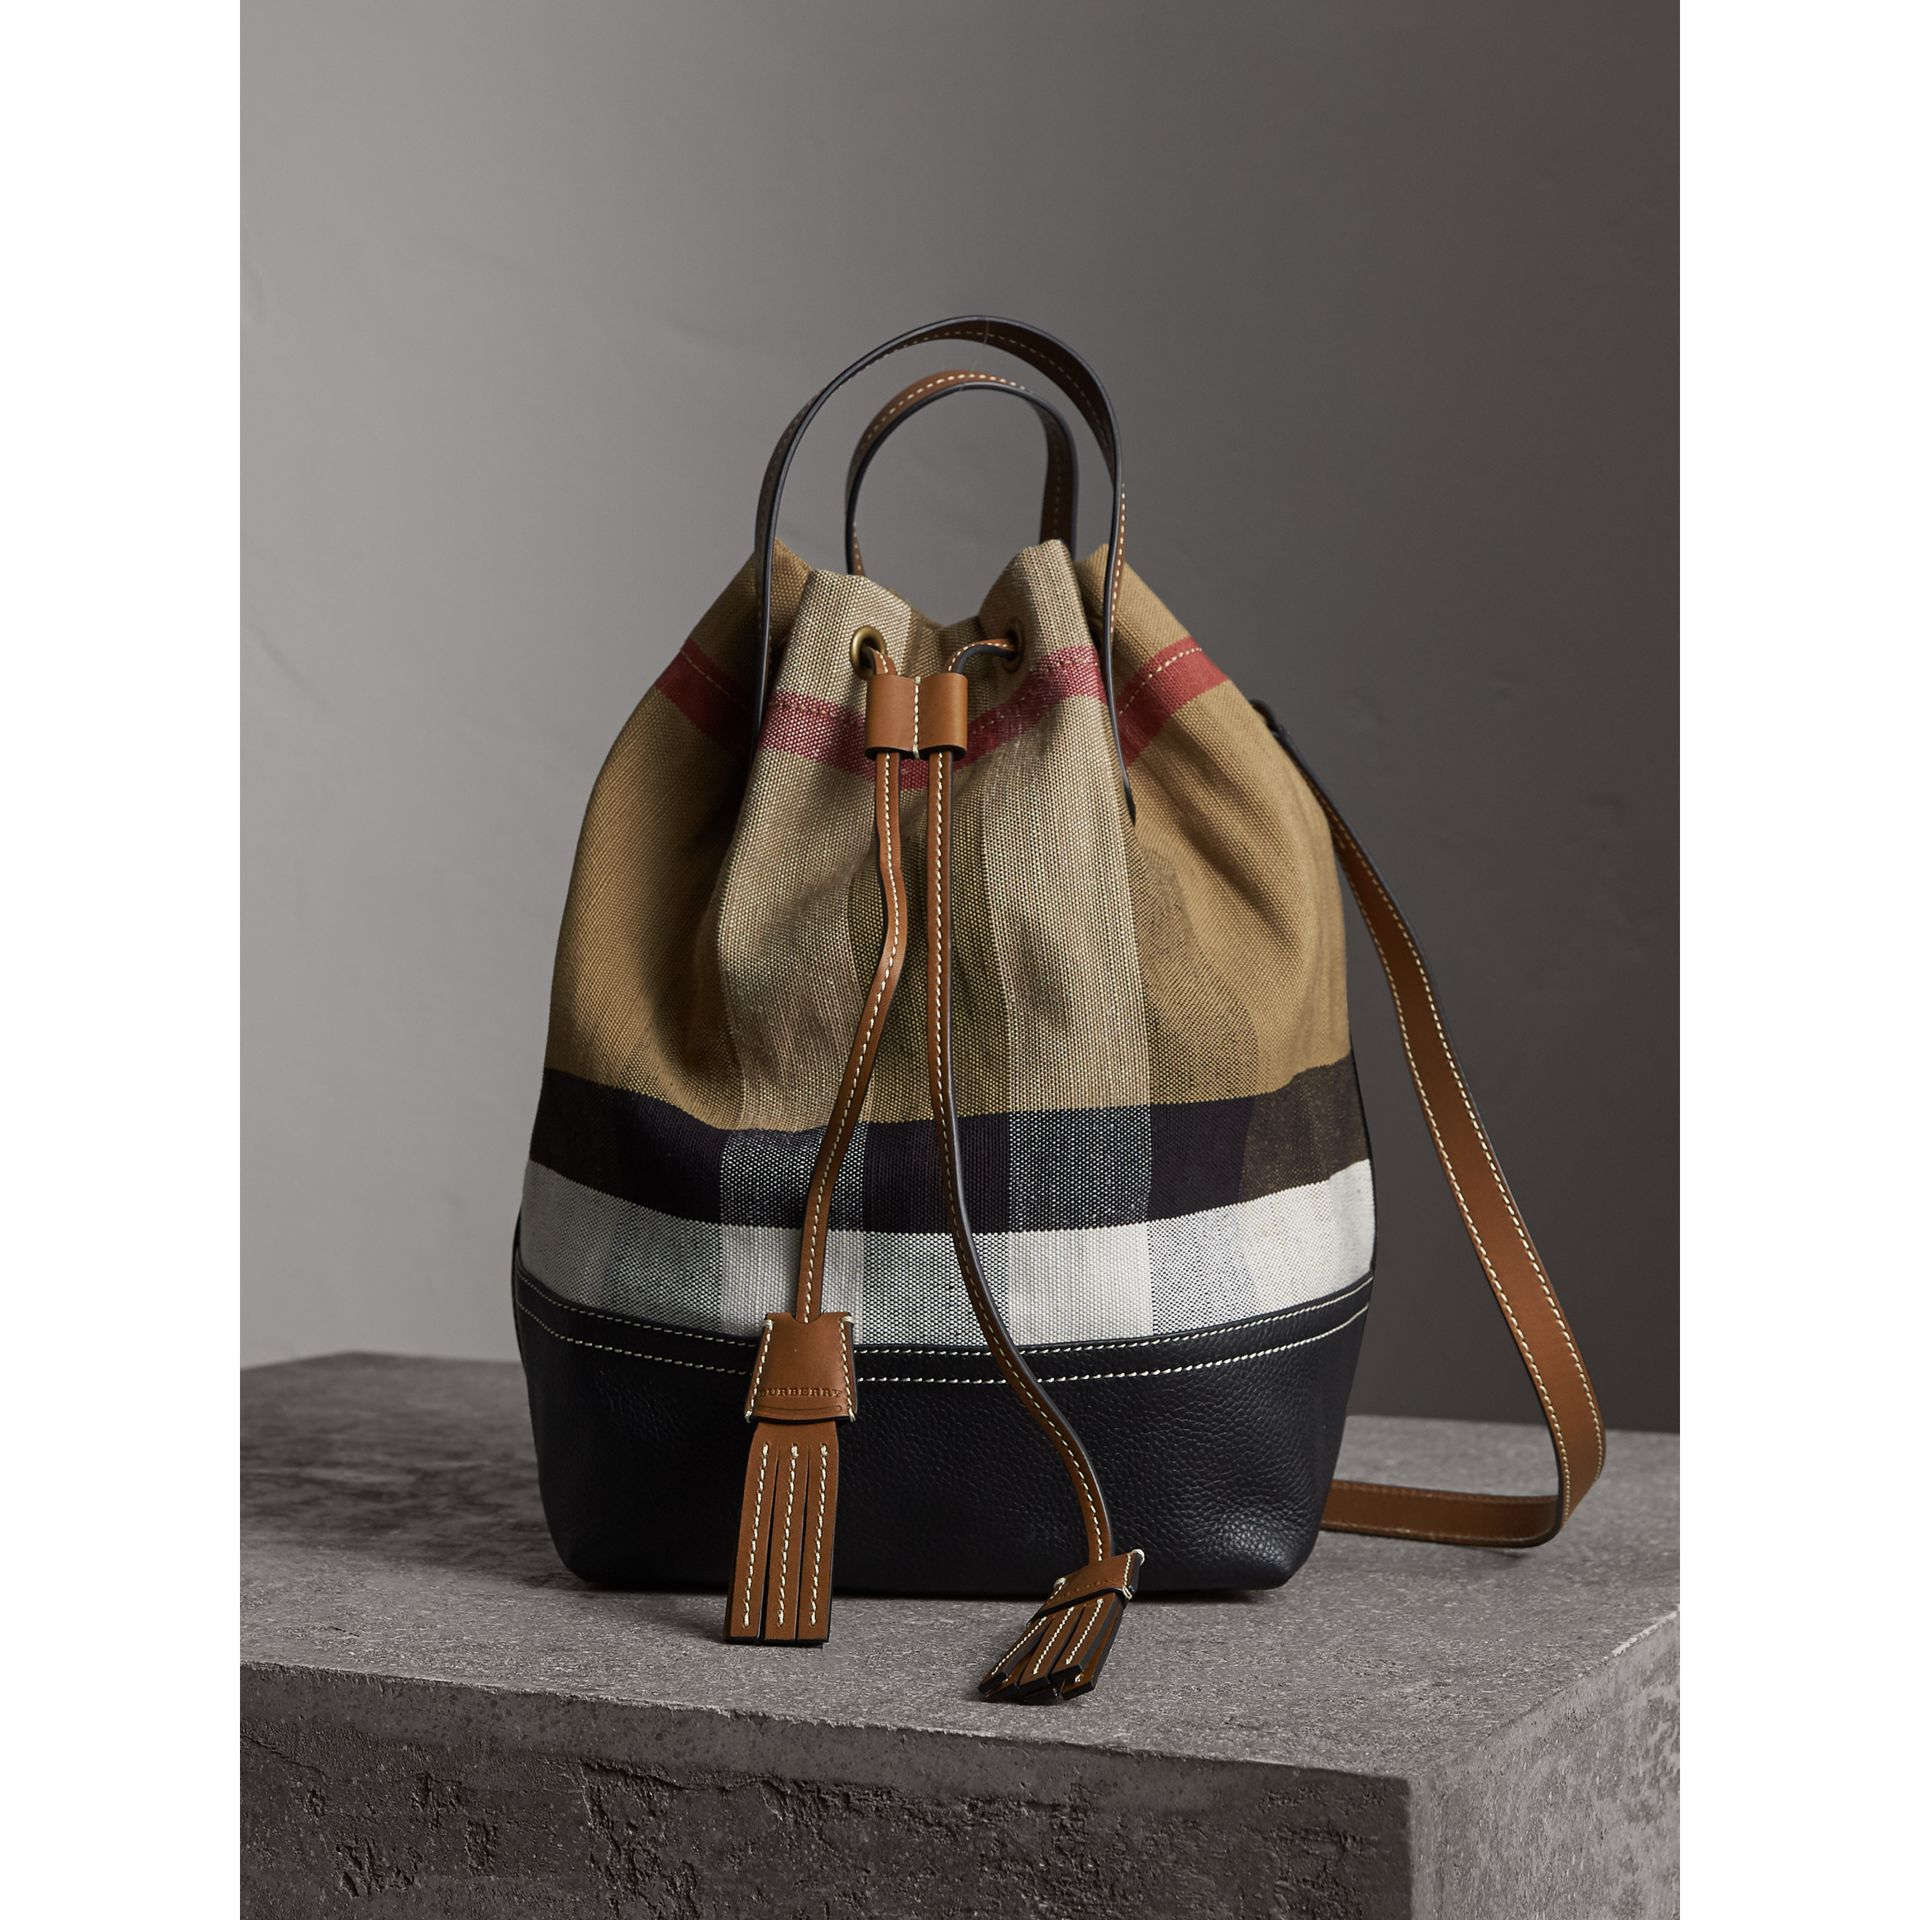 Burberry Medium Check Canvas Backpack - CEAGESP 4afeb768c3